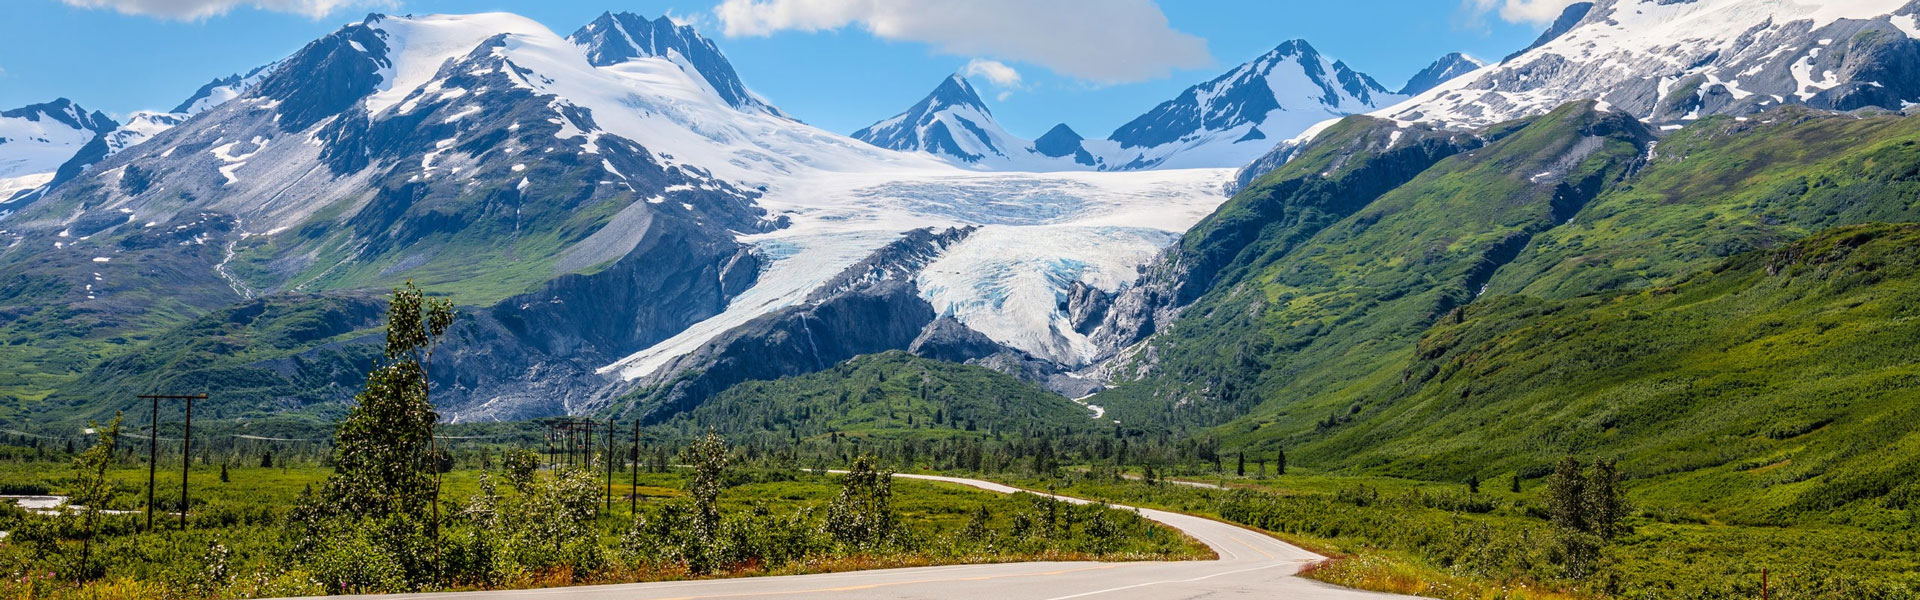 Alaska Road Trips | Alaska Self Driving Tours